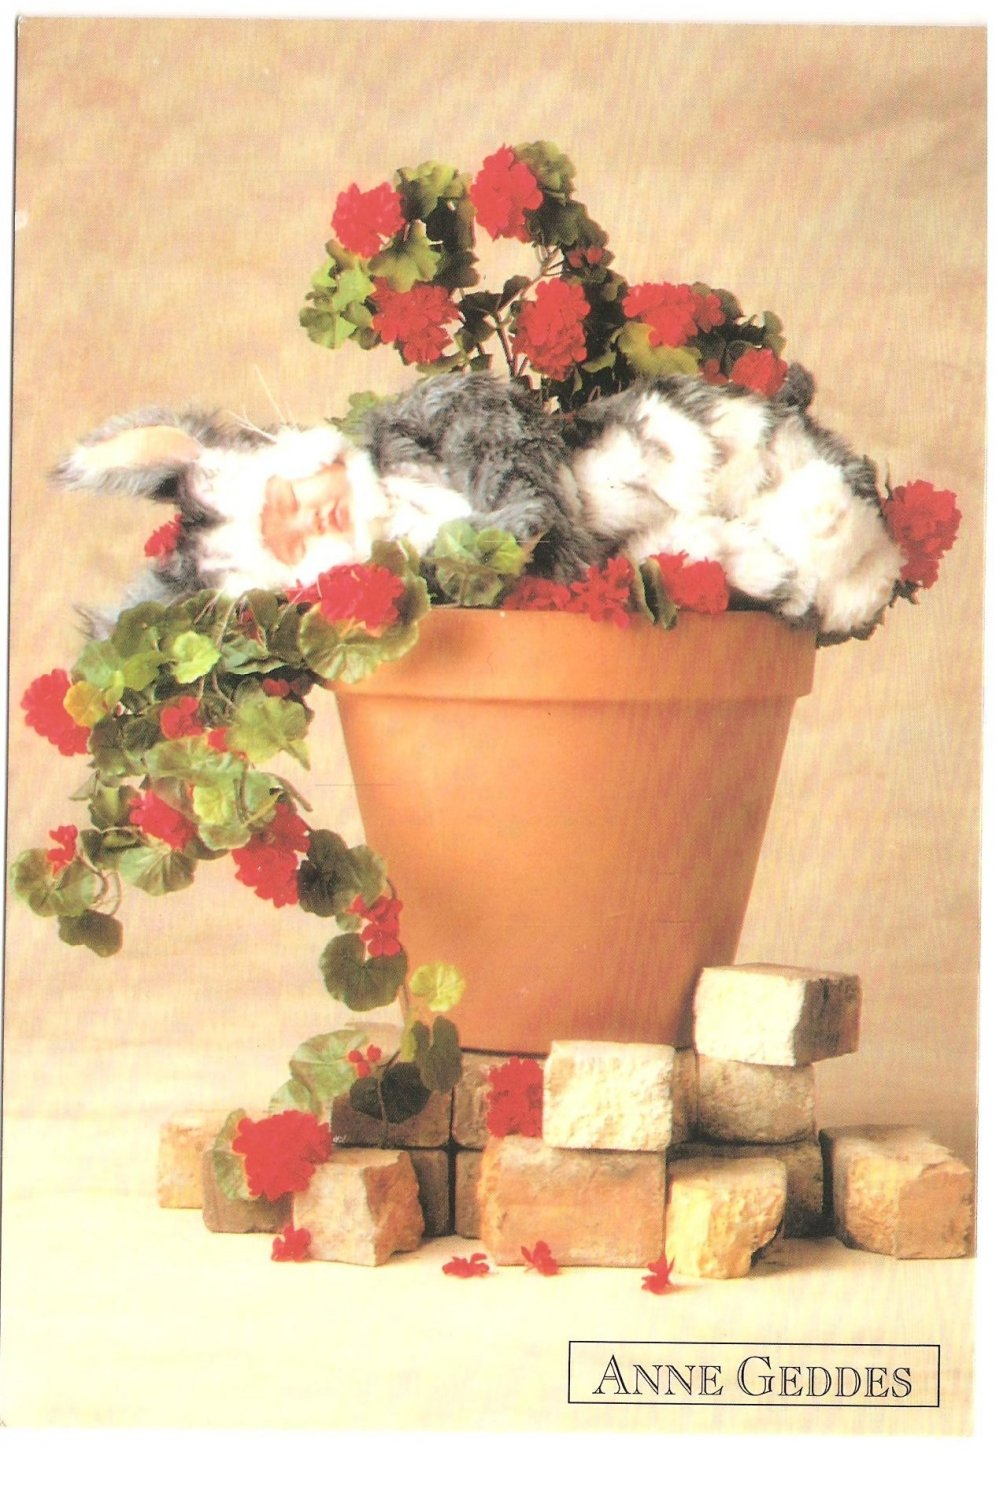 Anne Geddes Postcard 1995 Baby 605-022 Bunny Rabbit in Flower pot 4x6